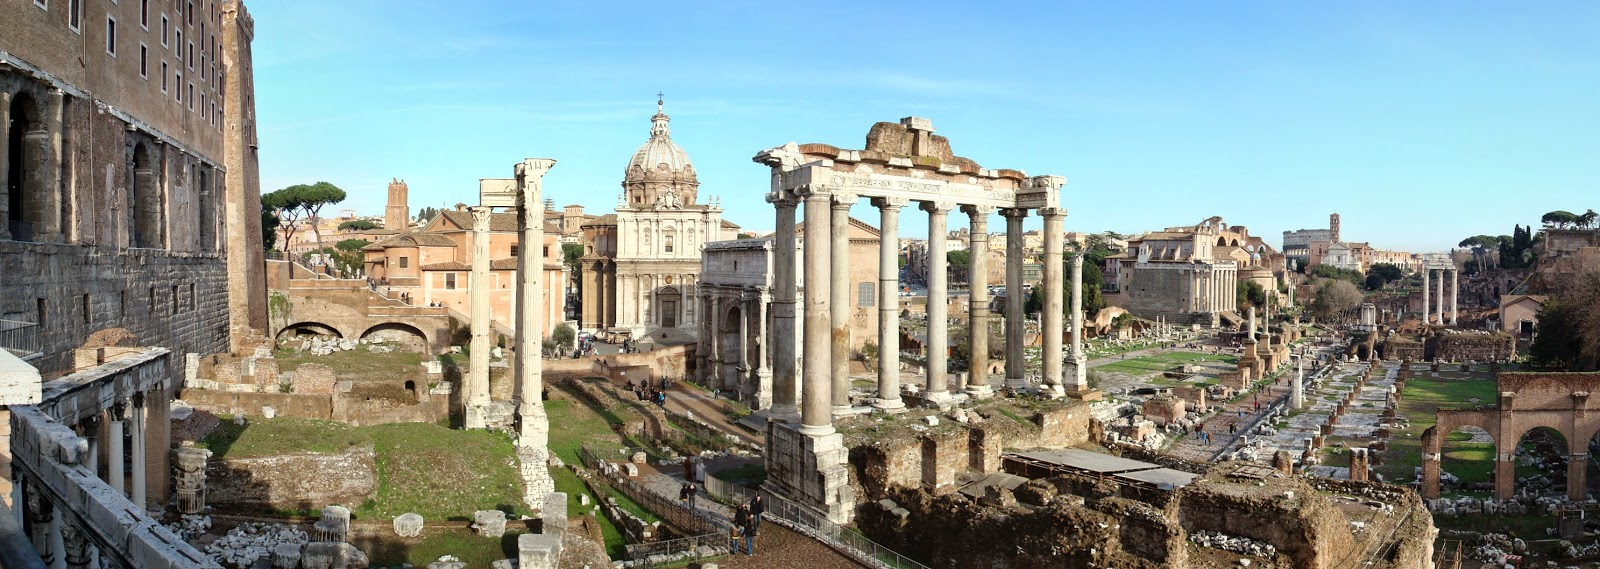 Rome Vocabulary Pics Photos Bridge Parts Diagram Jobspapa Today The Roman Forum Is A Collection Of Ruins That Only Give Hint How Impressive It Must Have Looked 2000 Years Ago